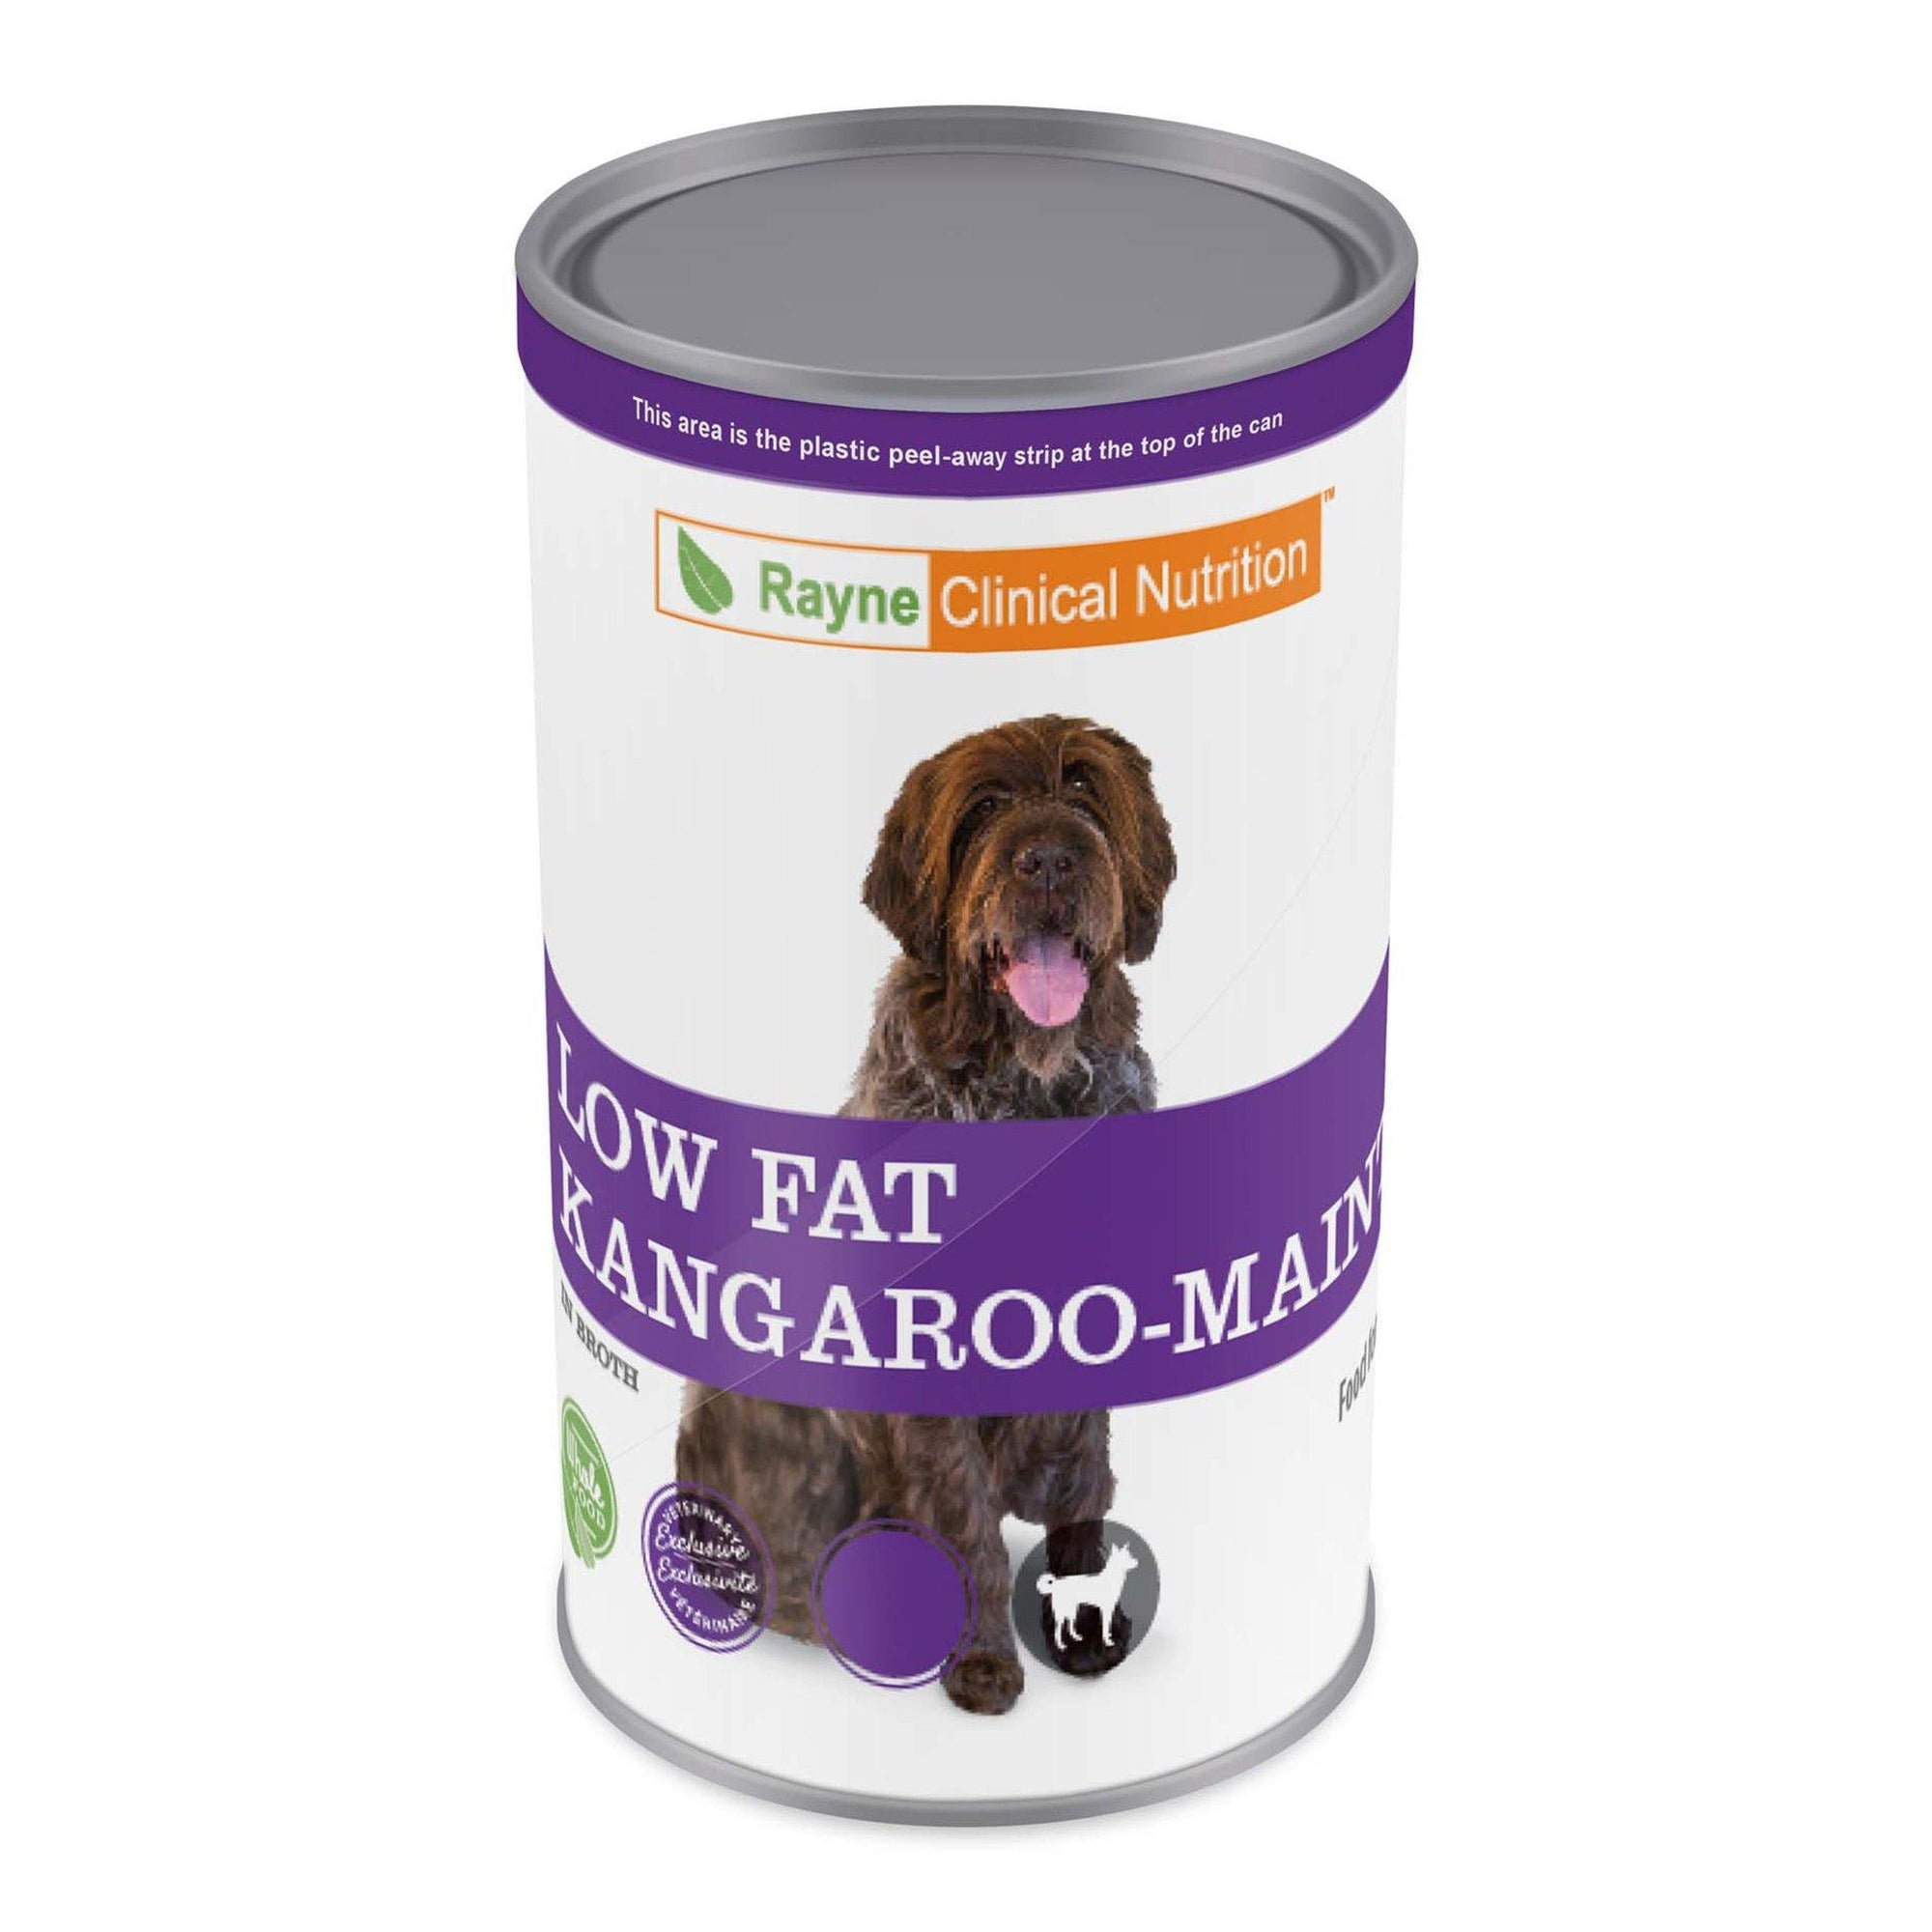 Low Fat Kangaroo-MAINT Canine Cans